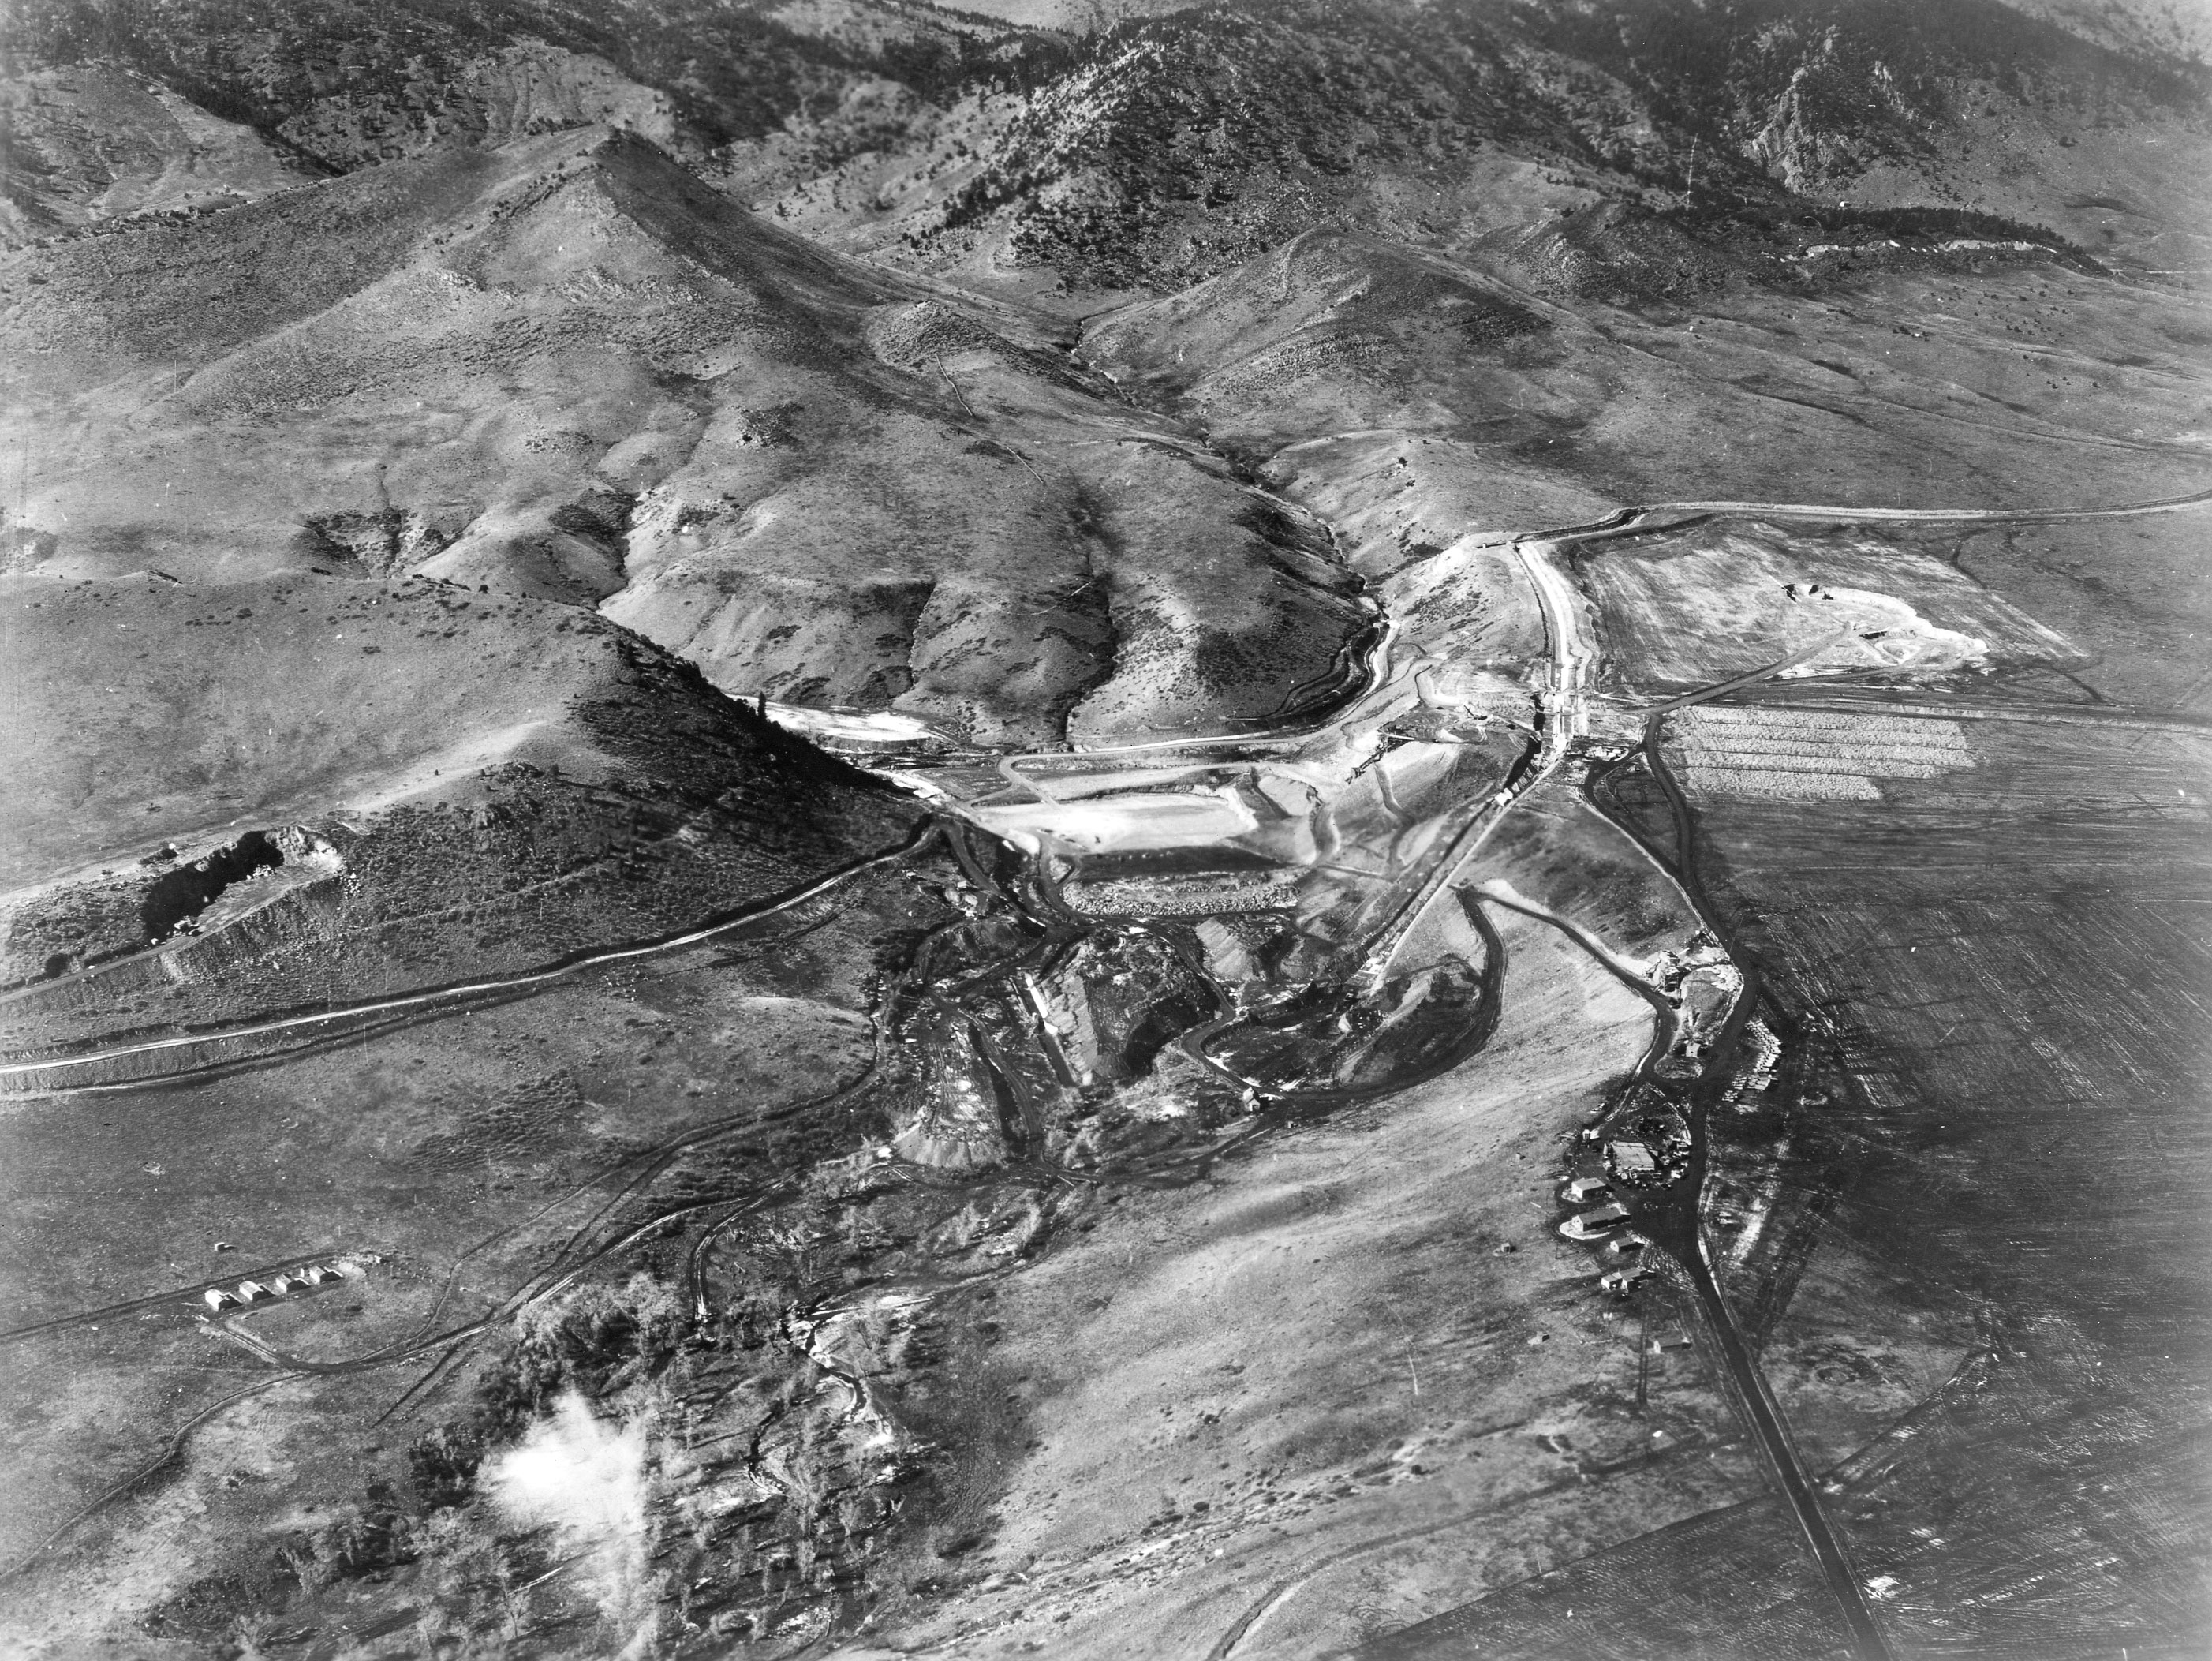 ralston dam construction